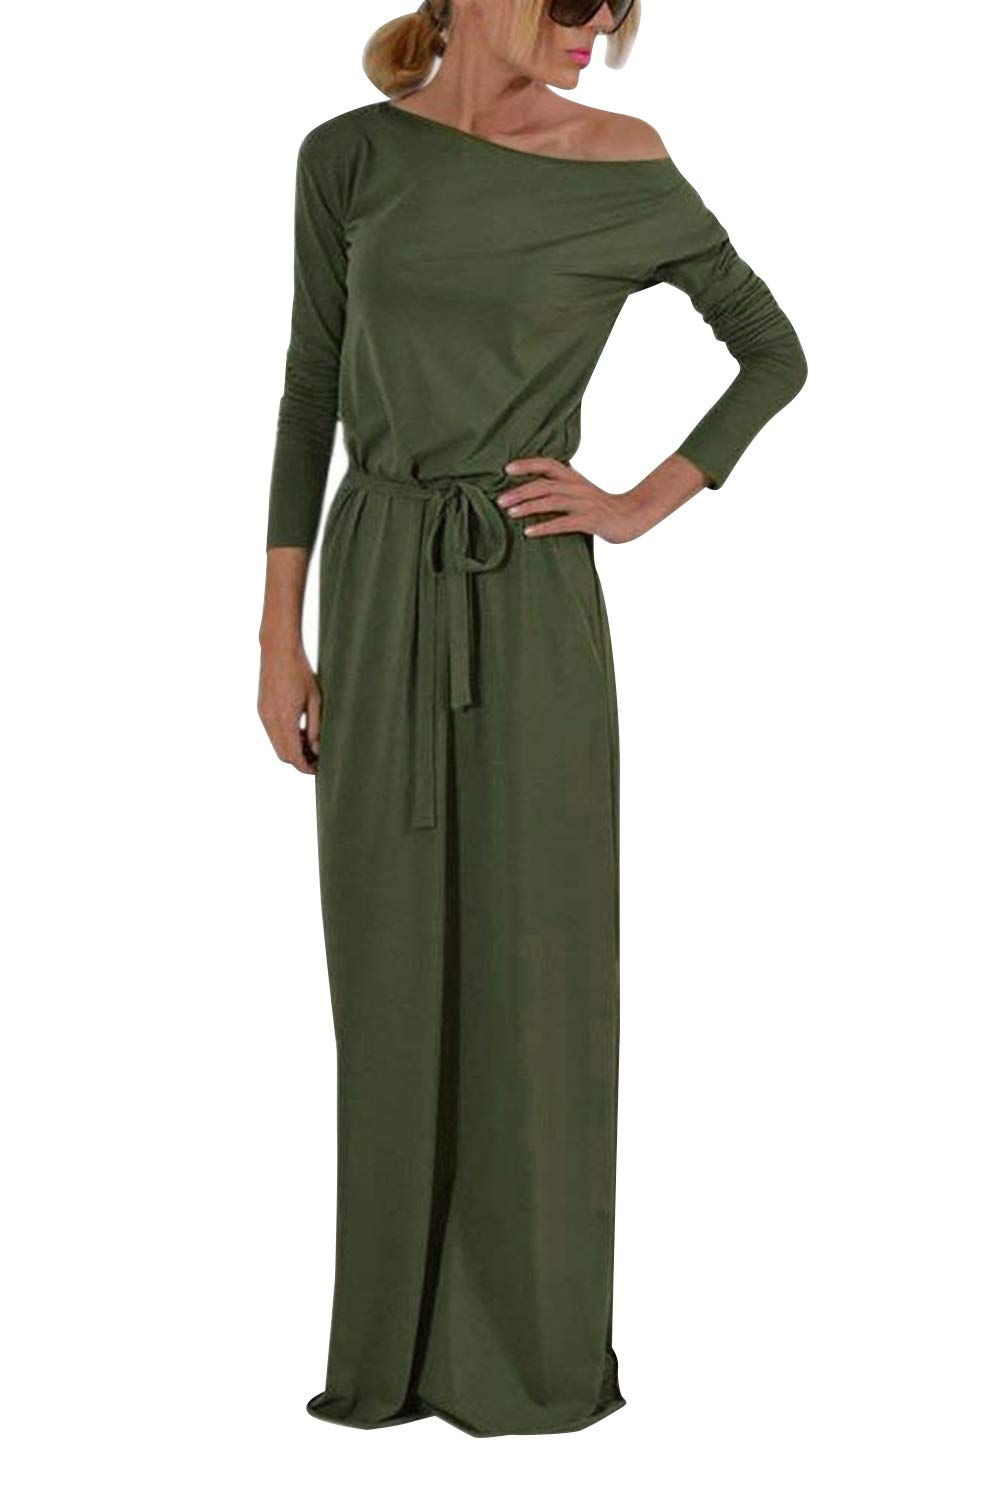 Yidarton Women's Casual Long Sleeve Solid Party Summer Long Maxi Dress Army Green M